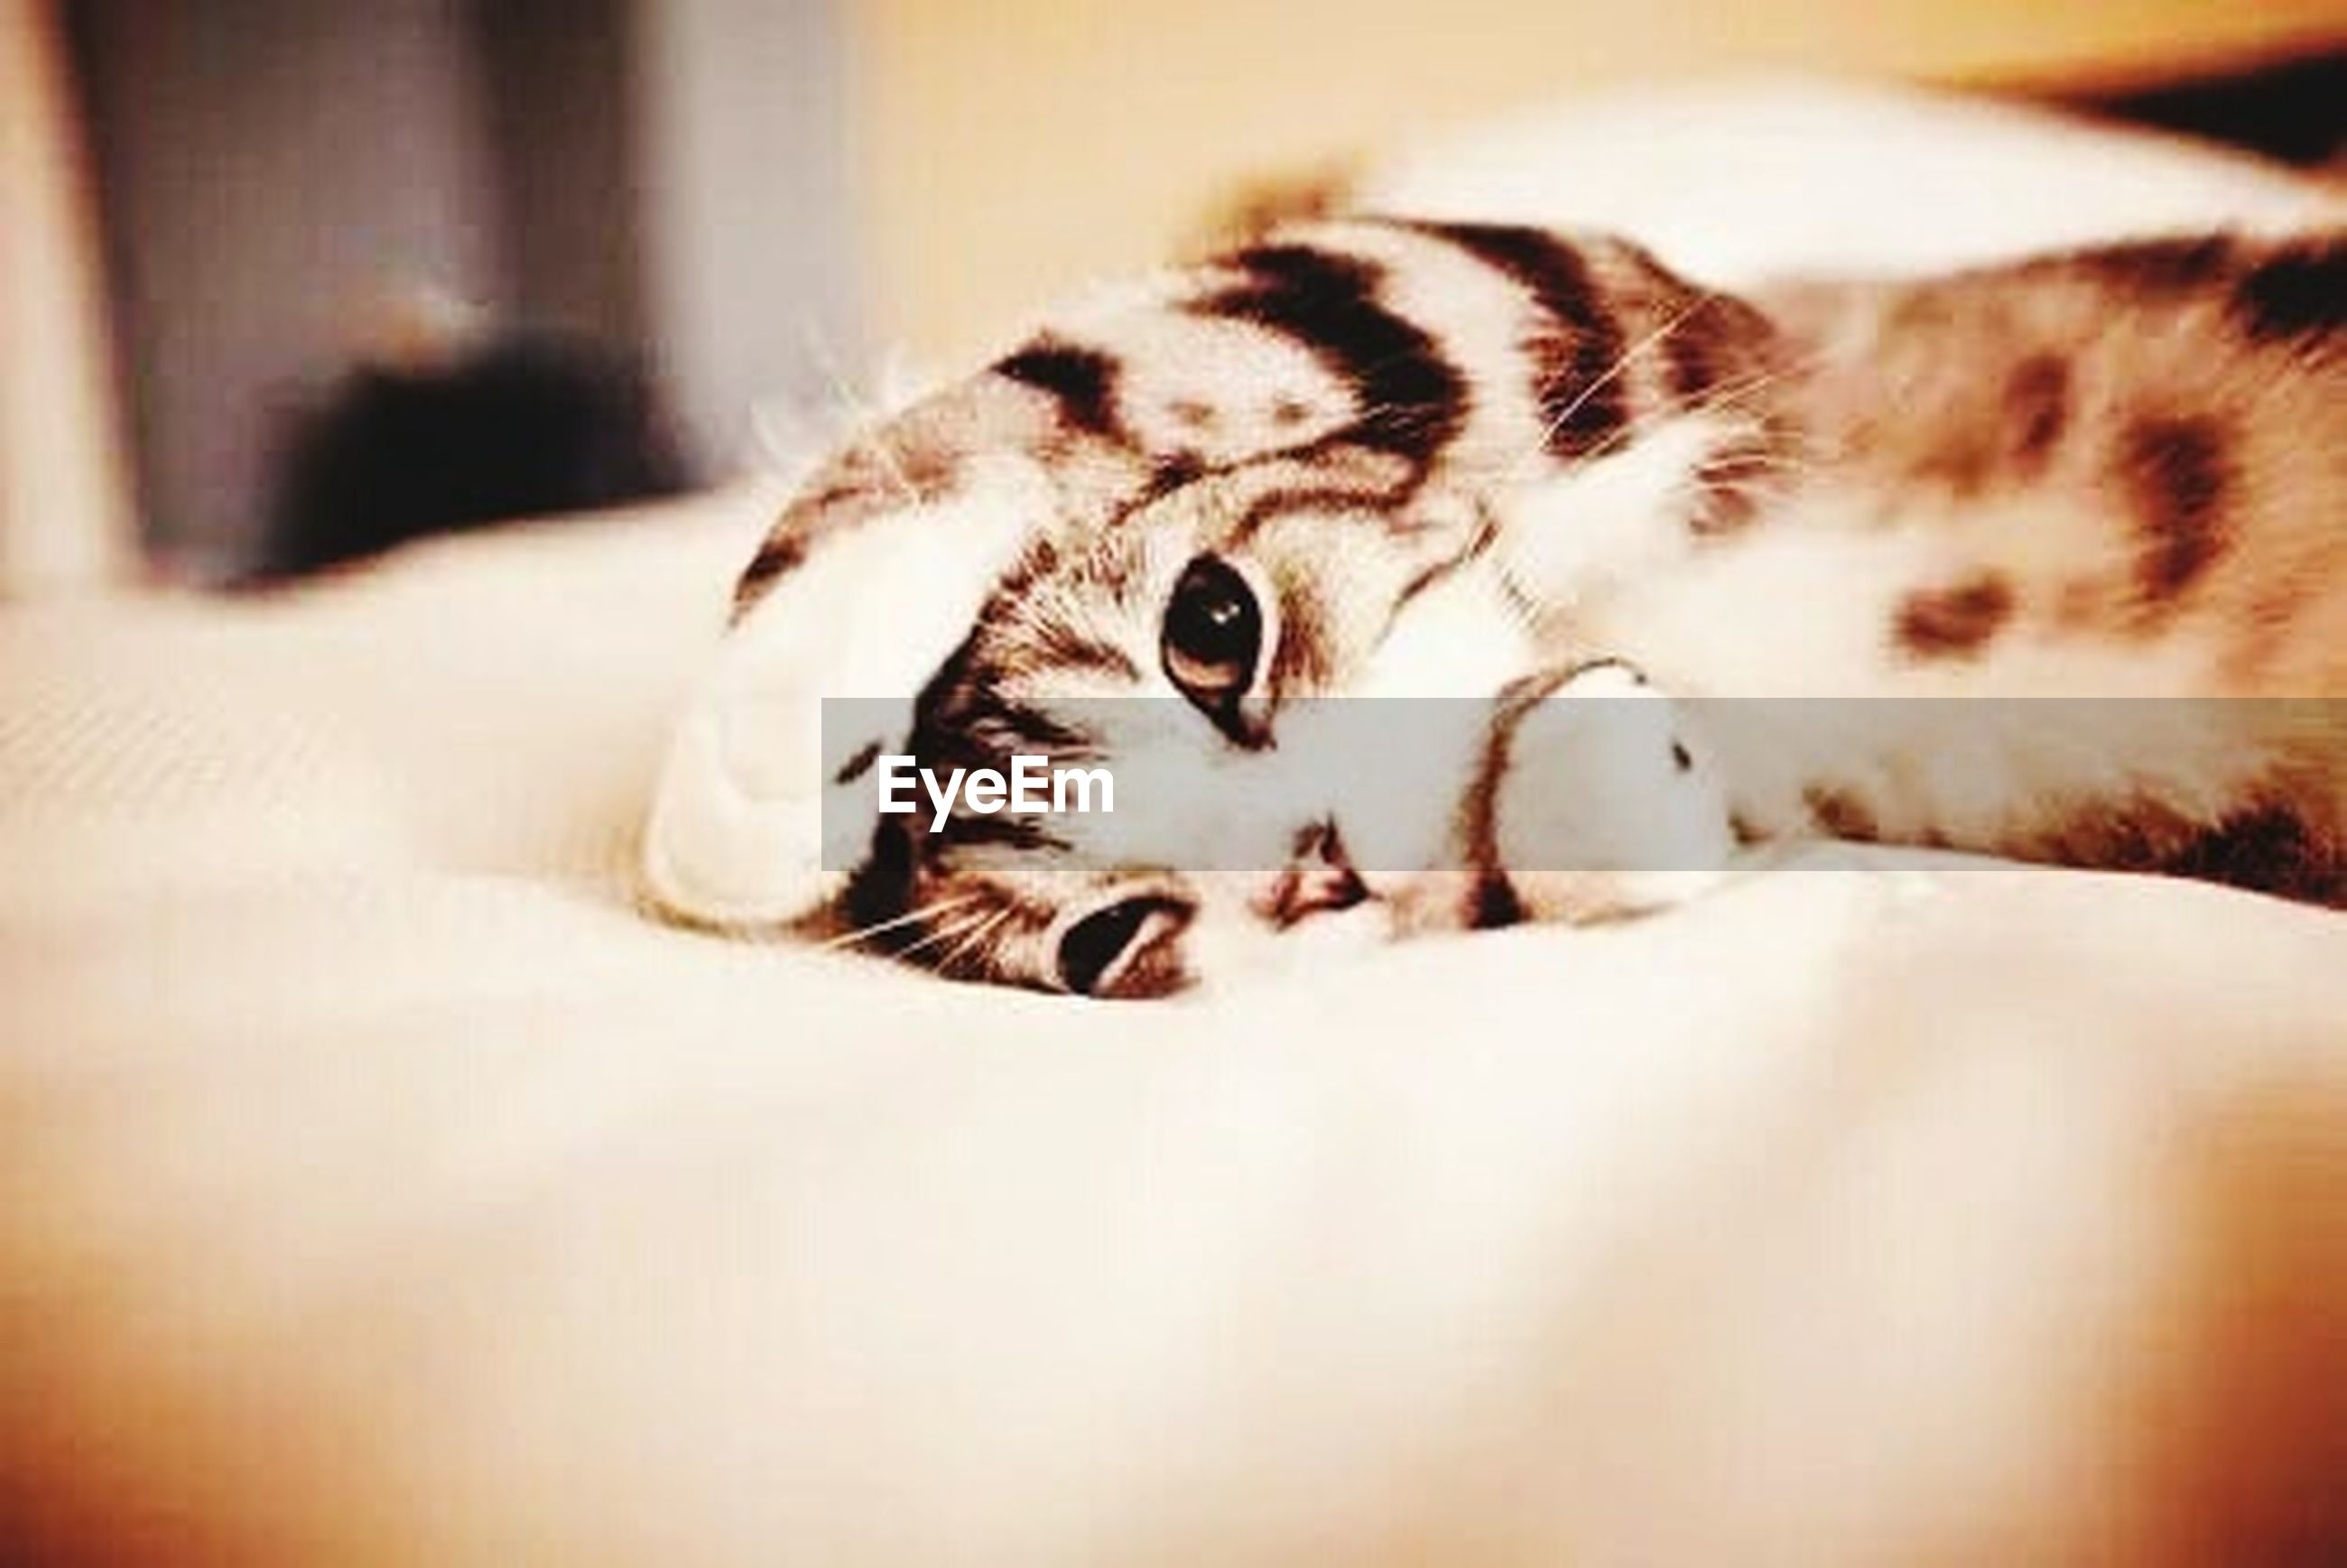 pets, domestic animals, indoors, animal themes, one animal, mammal, relaxation, resting, domestic cat, lying down, sleeping, bed, cat, feline, home interior, close-up, selective focus, whisker, comfortable, relaxing